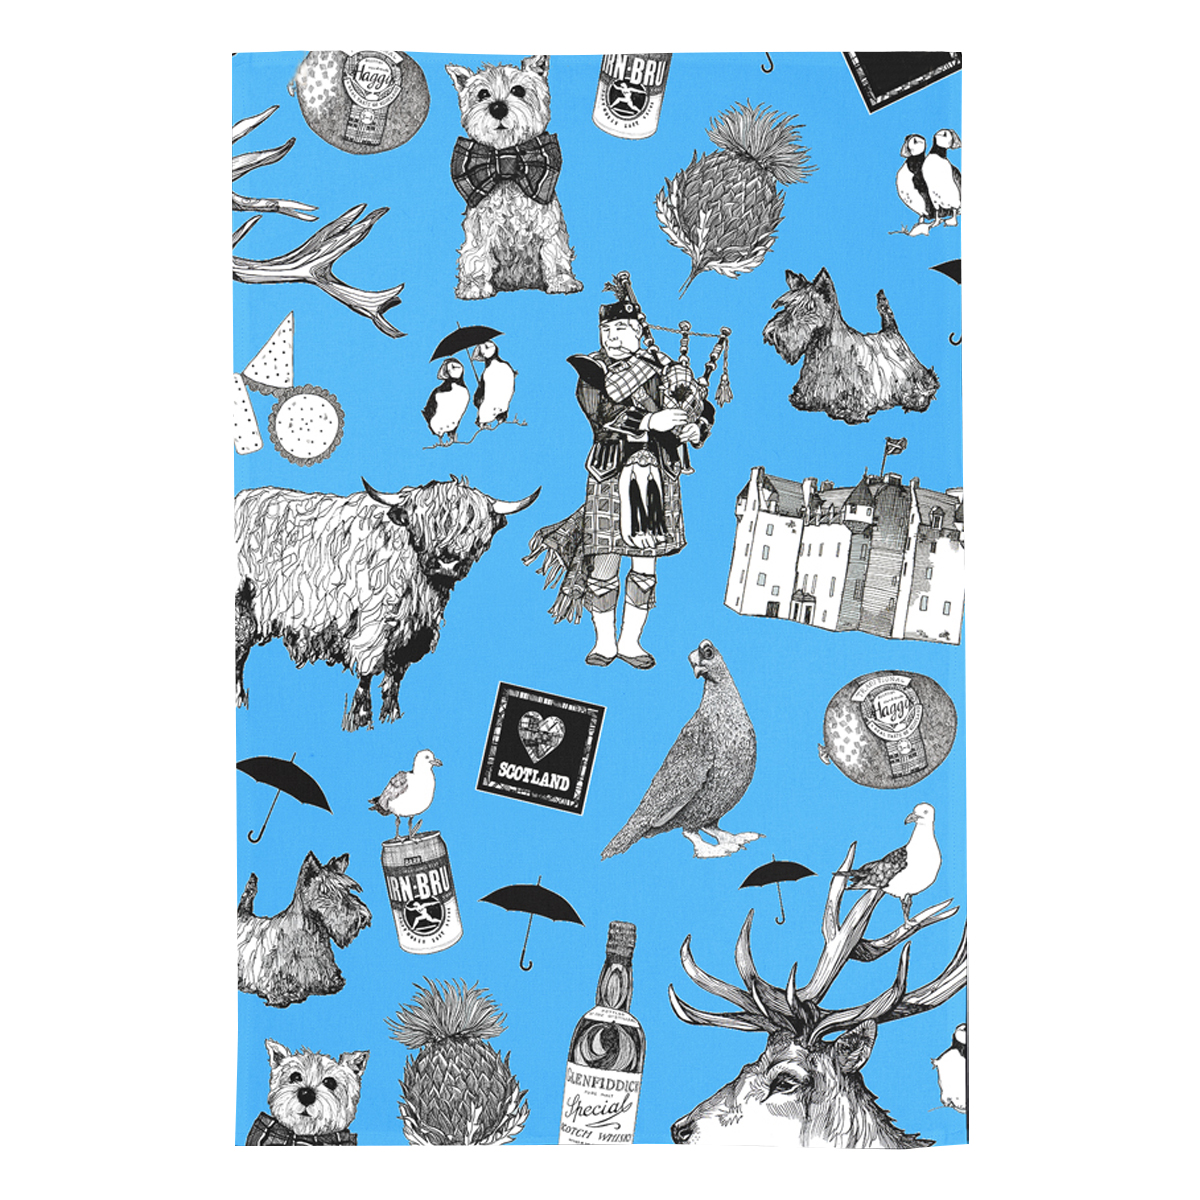 Blue tea towel from Gillian Kyle with Scottish imagery in black and white